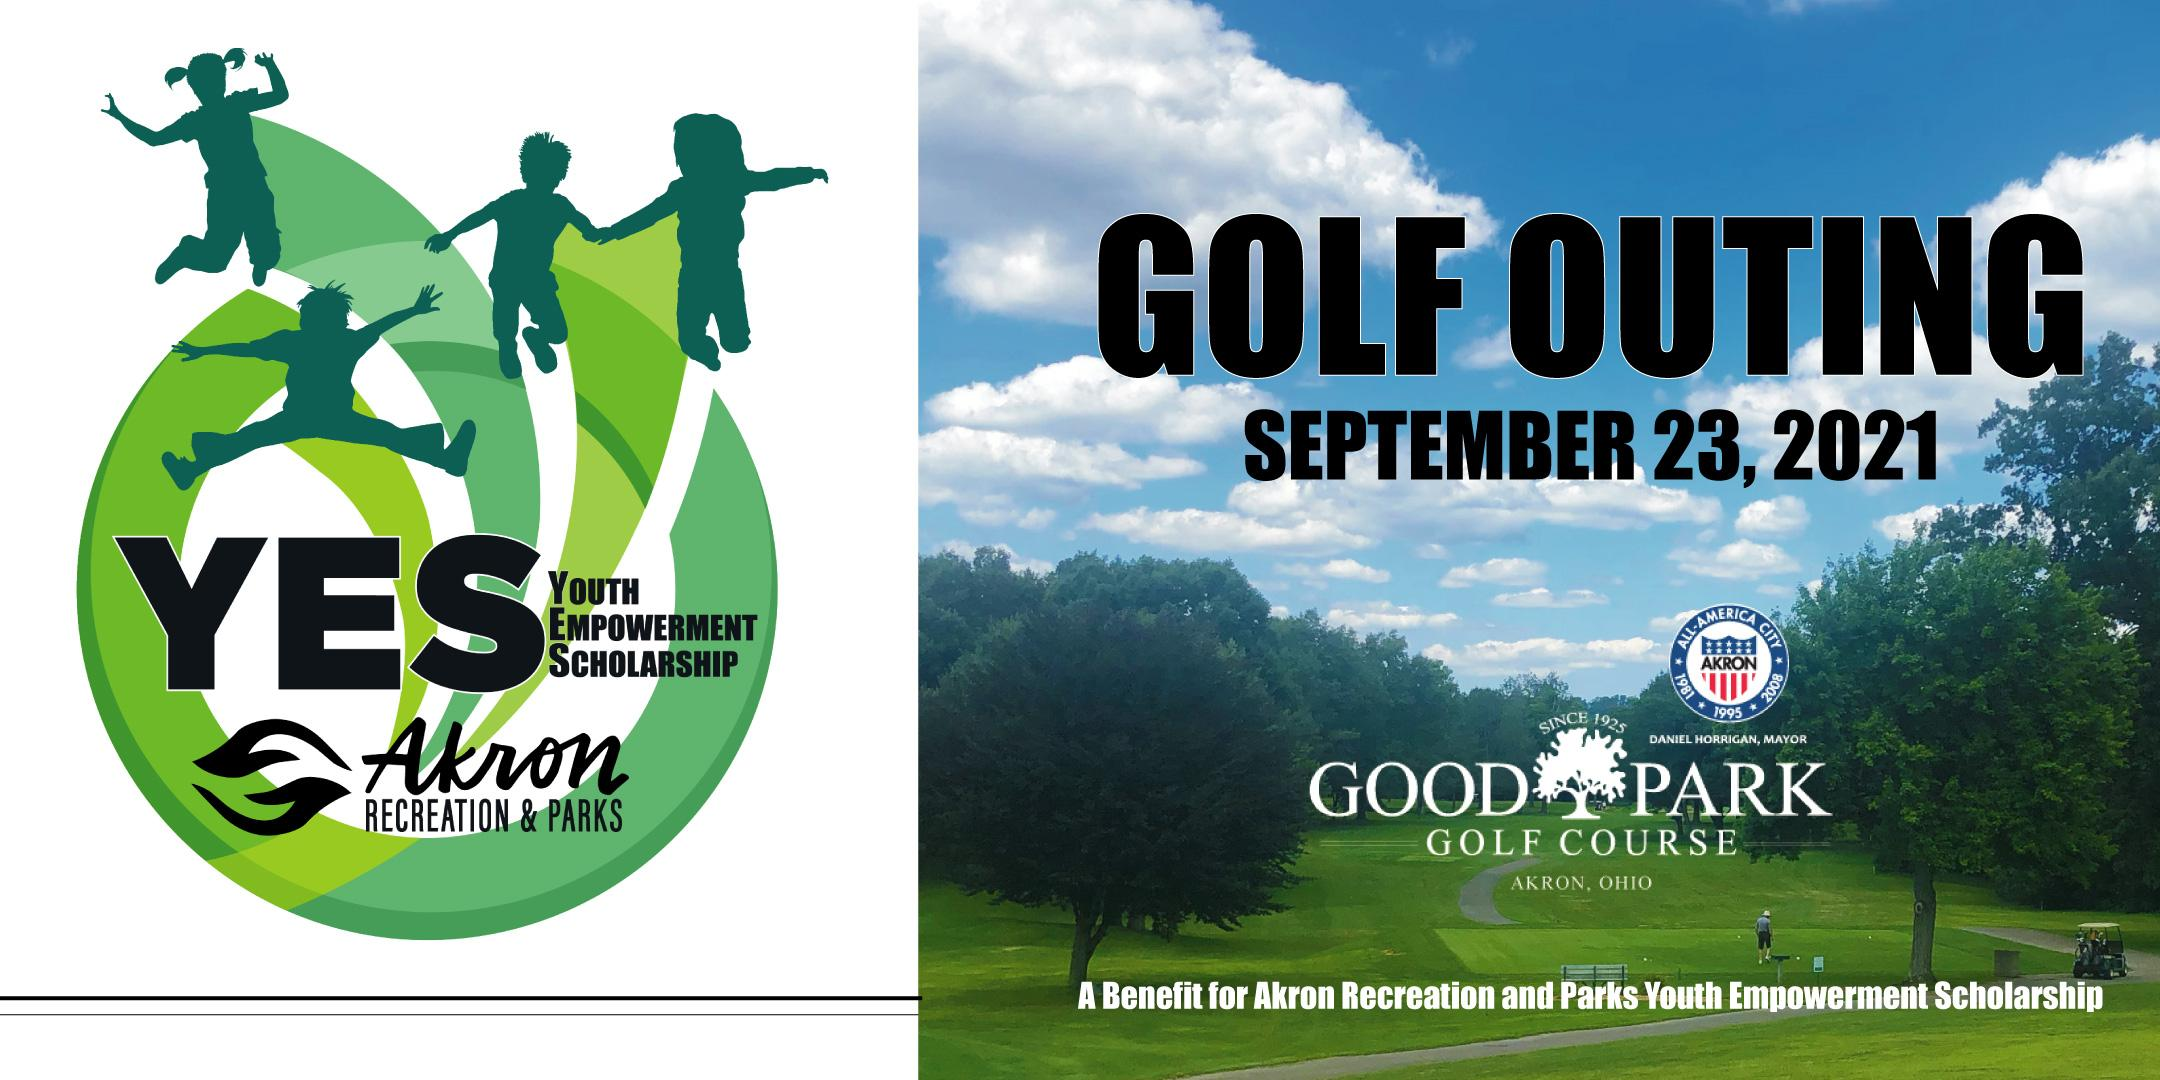 YES (Youth Empowerment Scholarship) FUND - Charity Golf Outing